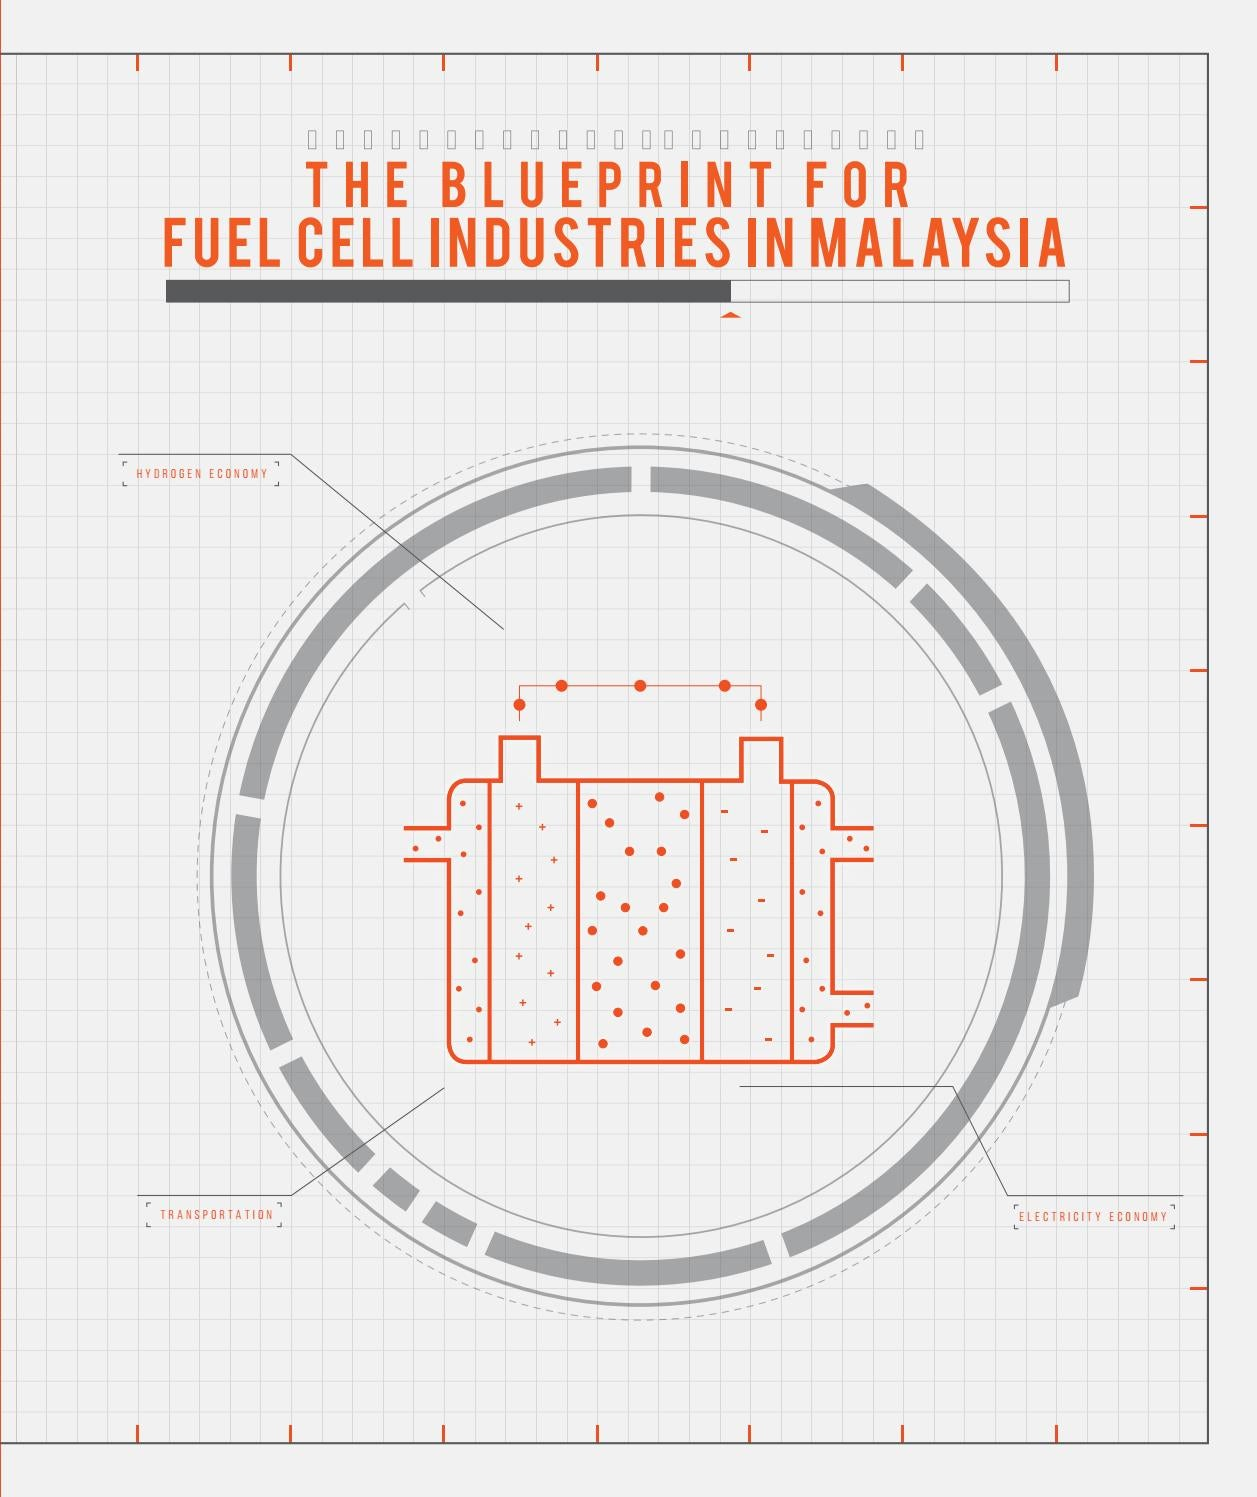 The Blueprint for Fuel Cell Industries in Malaysia by